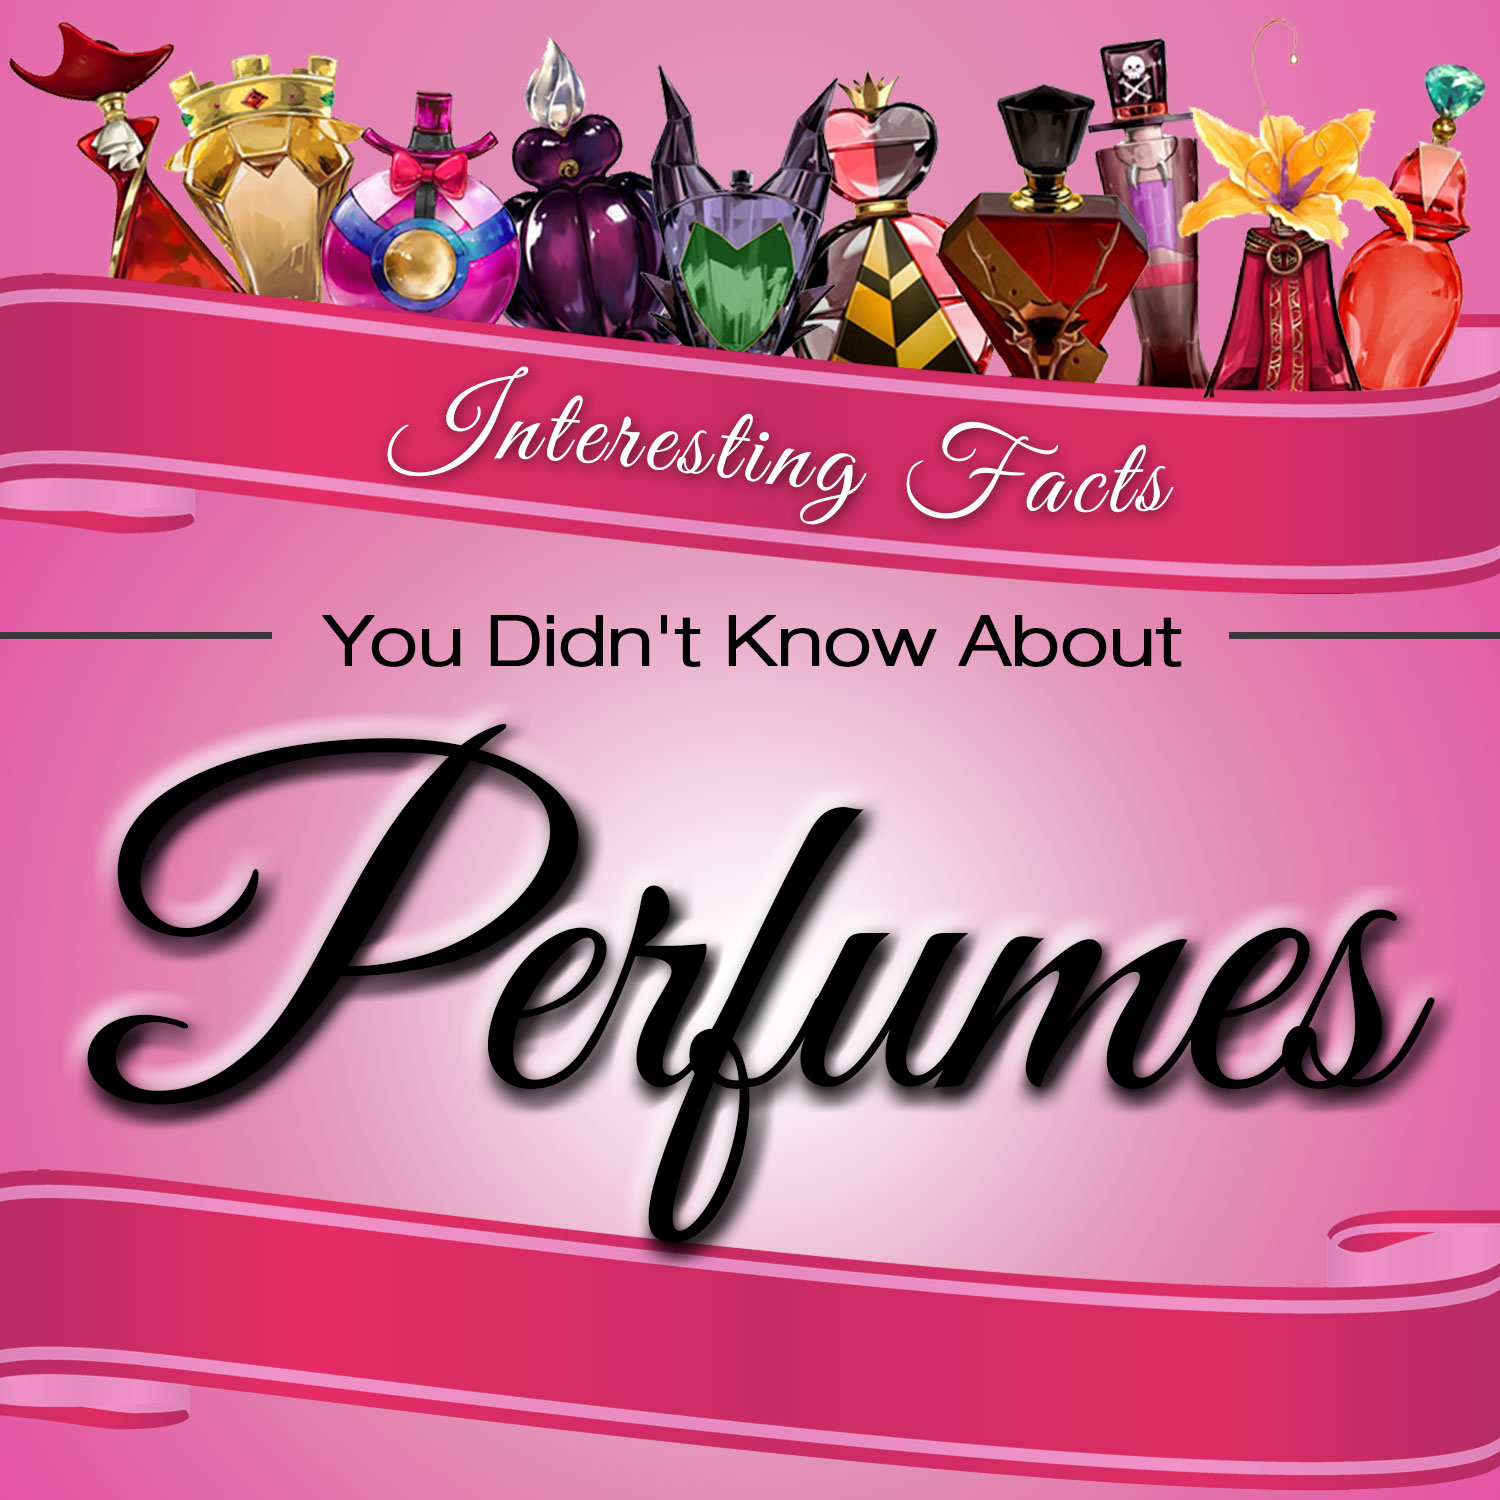 8 Interesting Facts You Didnt Know About Perfumes